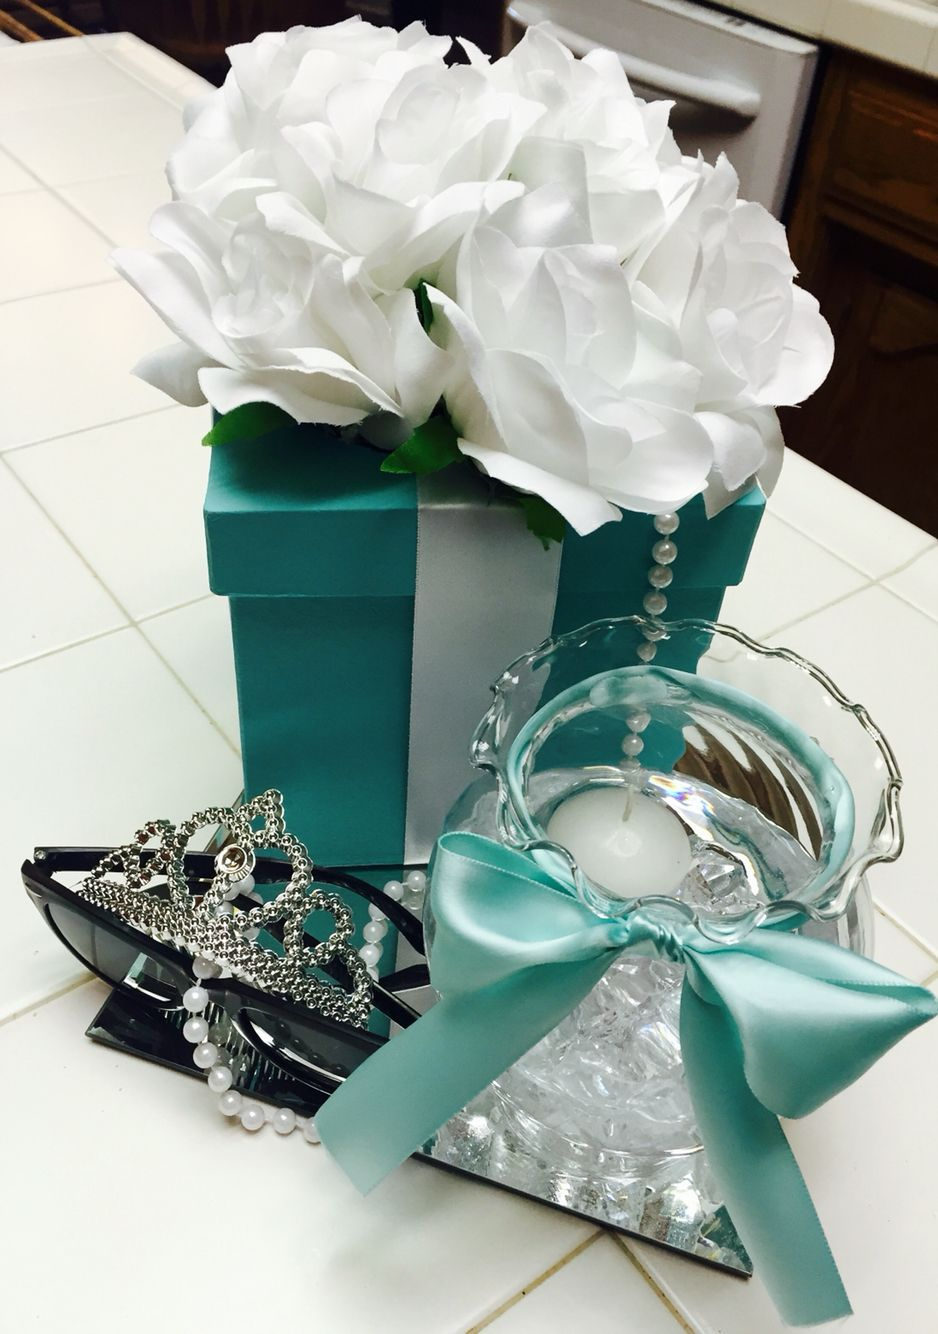 Breakfast At Tiffany S Centerpieces On Square Mirrors For My Daughter S Birthday Par Tiffany Blue Wedding Theme Breakfast At Tiffanys Party Ideas Tiffany Party